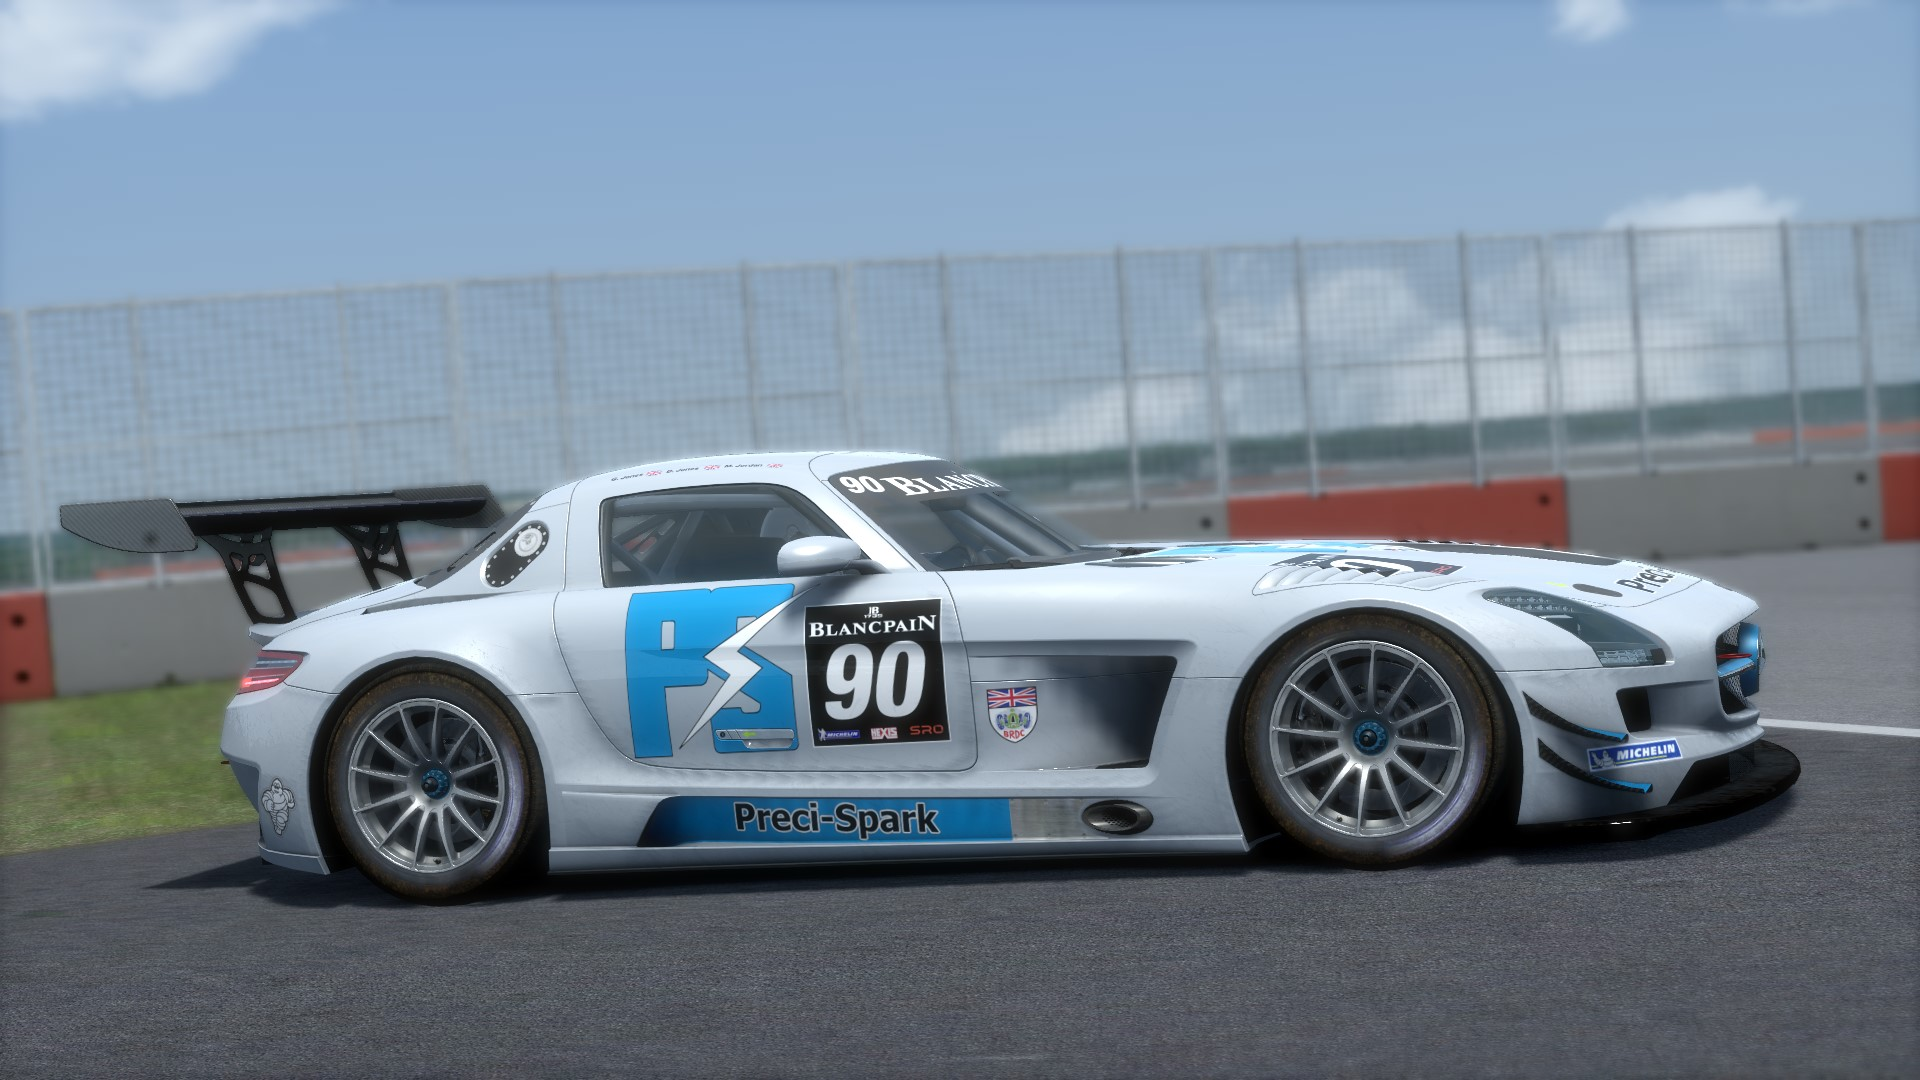 Screenshot_mercedes_sls_gt3_silverstone-national_14-1-2015-4-22-35.jpg